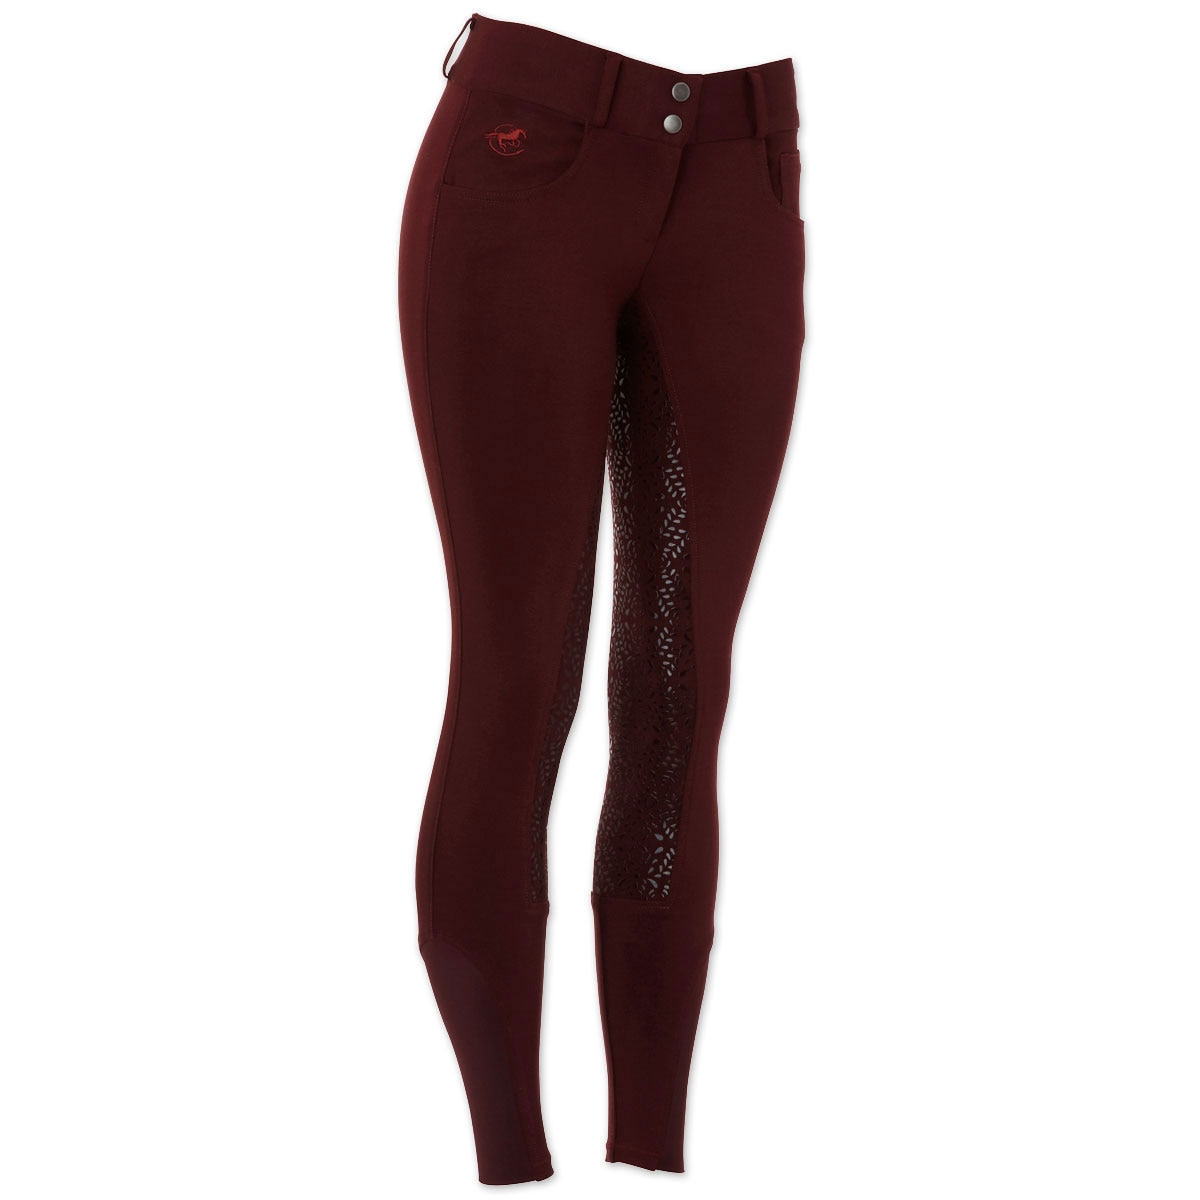 Piper Knit Breeches by SmartPak- Low Rise Full Seat - Sale!